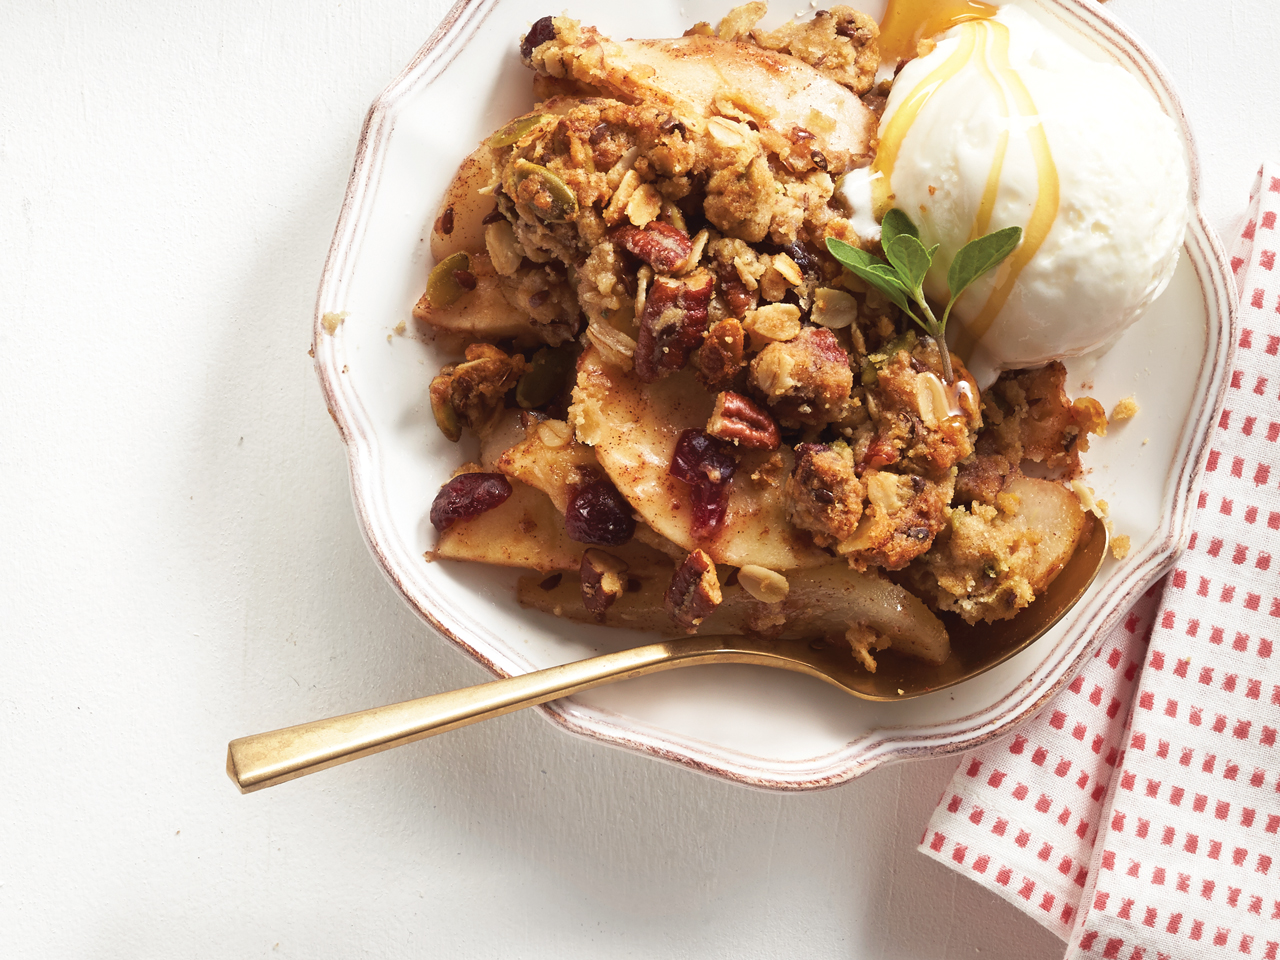 Apple and Pear Superfood Crumble